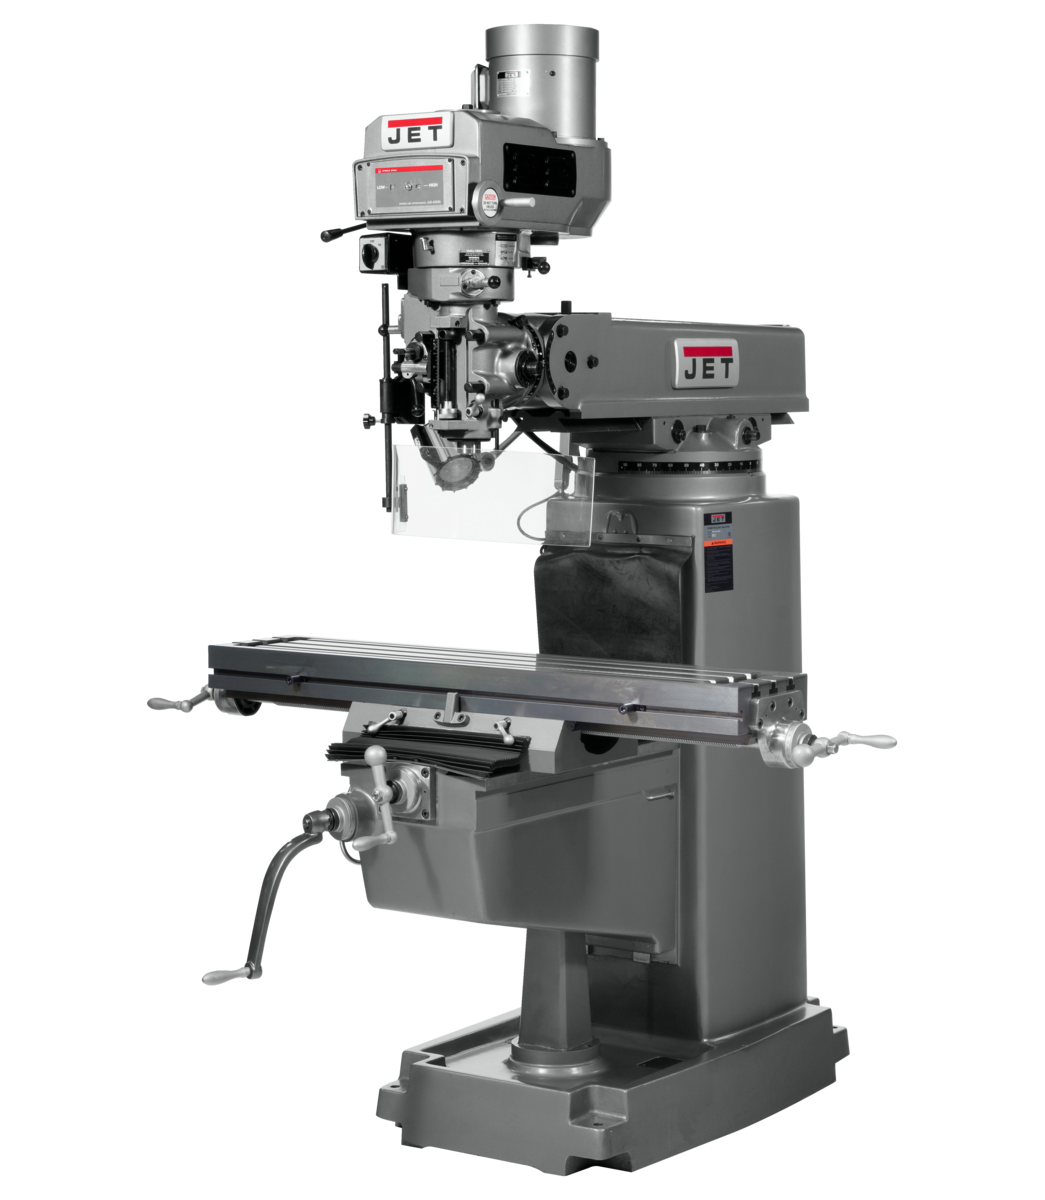 JTM-1050VS2 Mill With 3-Axis Newall DP700 DRO (Quill) With X, Y and Z-Axis Powerfeeds And Power Draw Bar